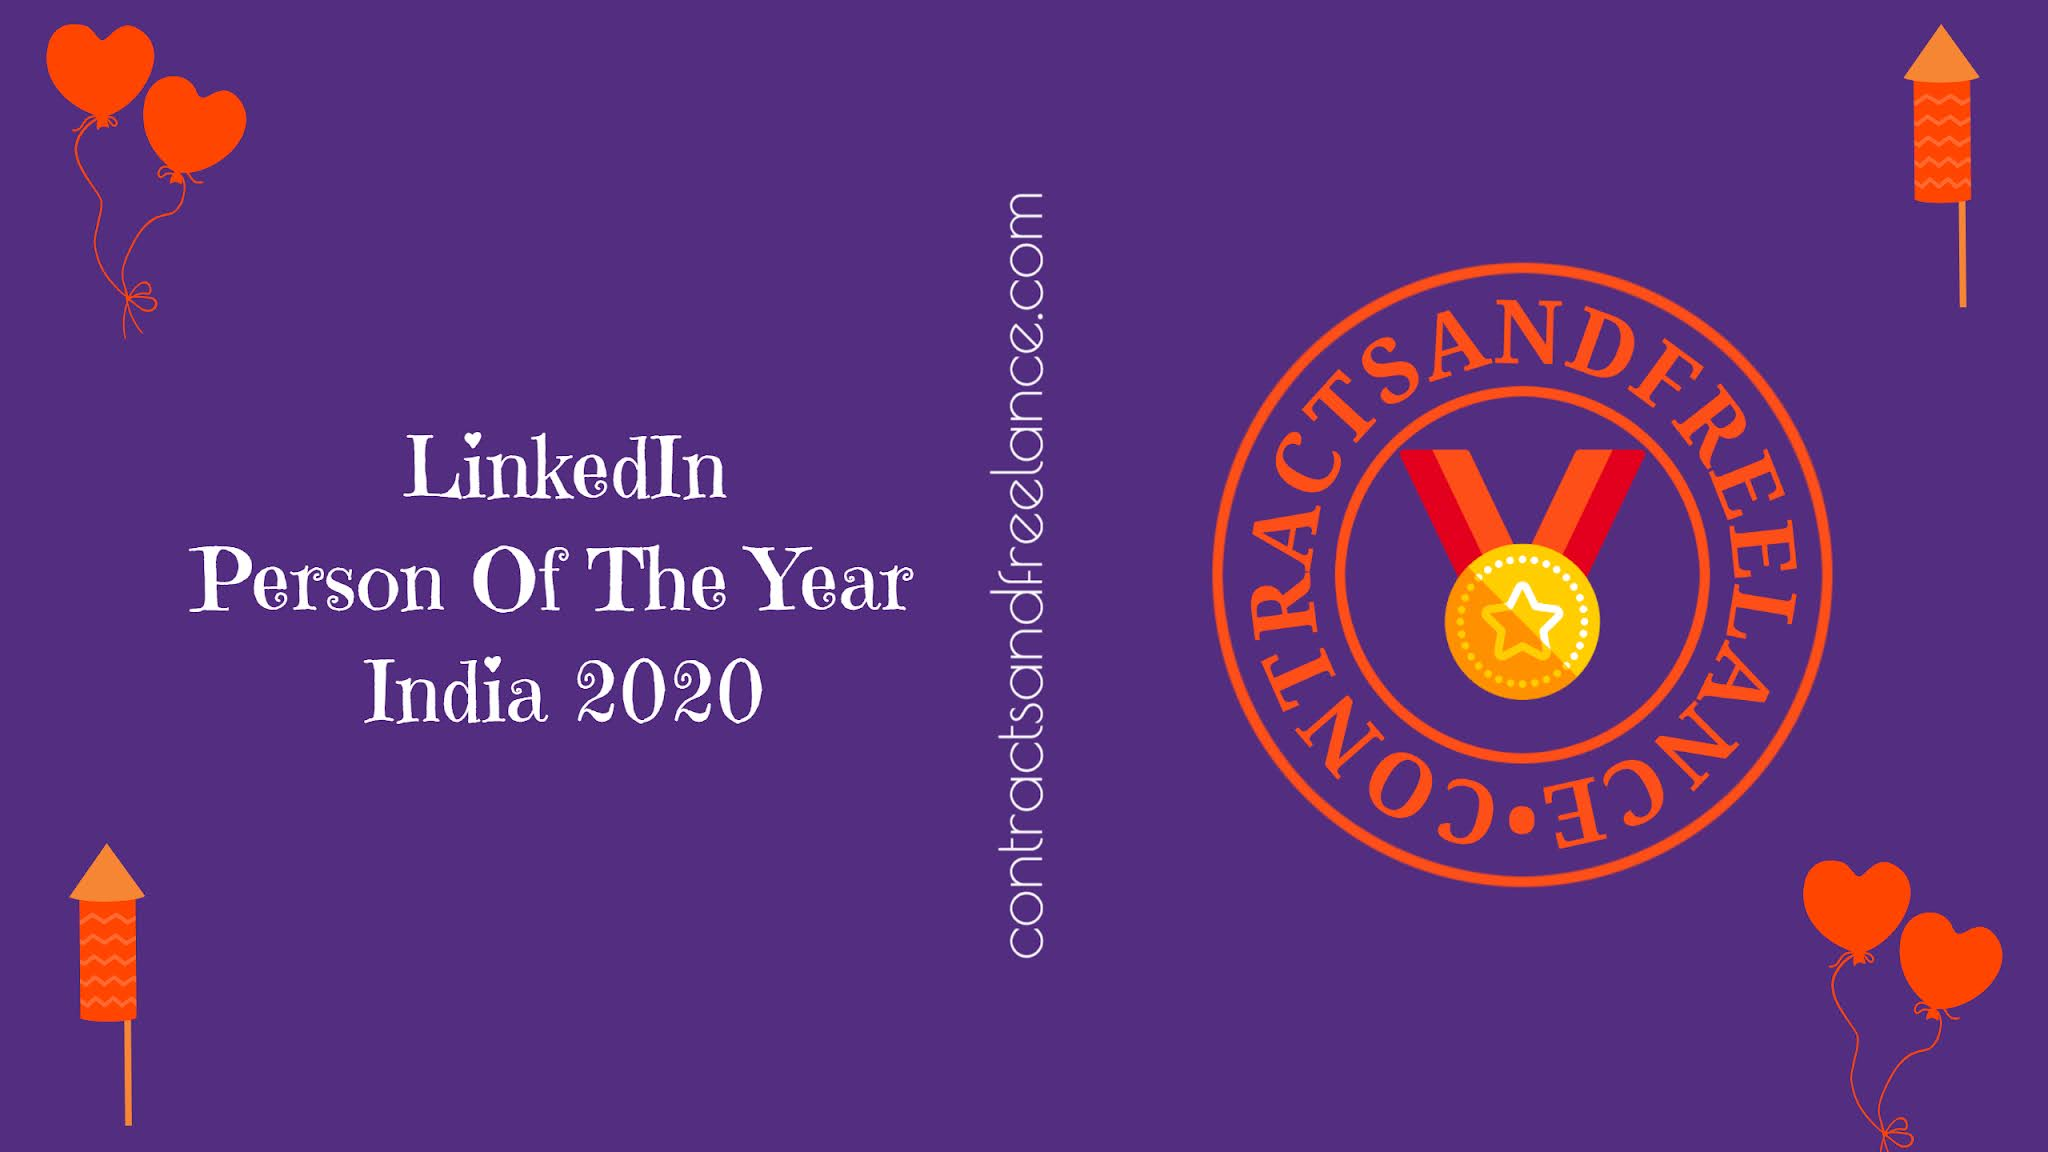 Contracts And Freelance LinkedIn Person Of The Year India 2020